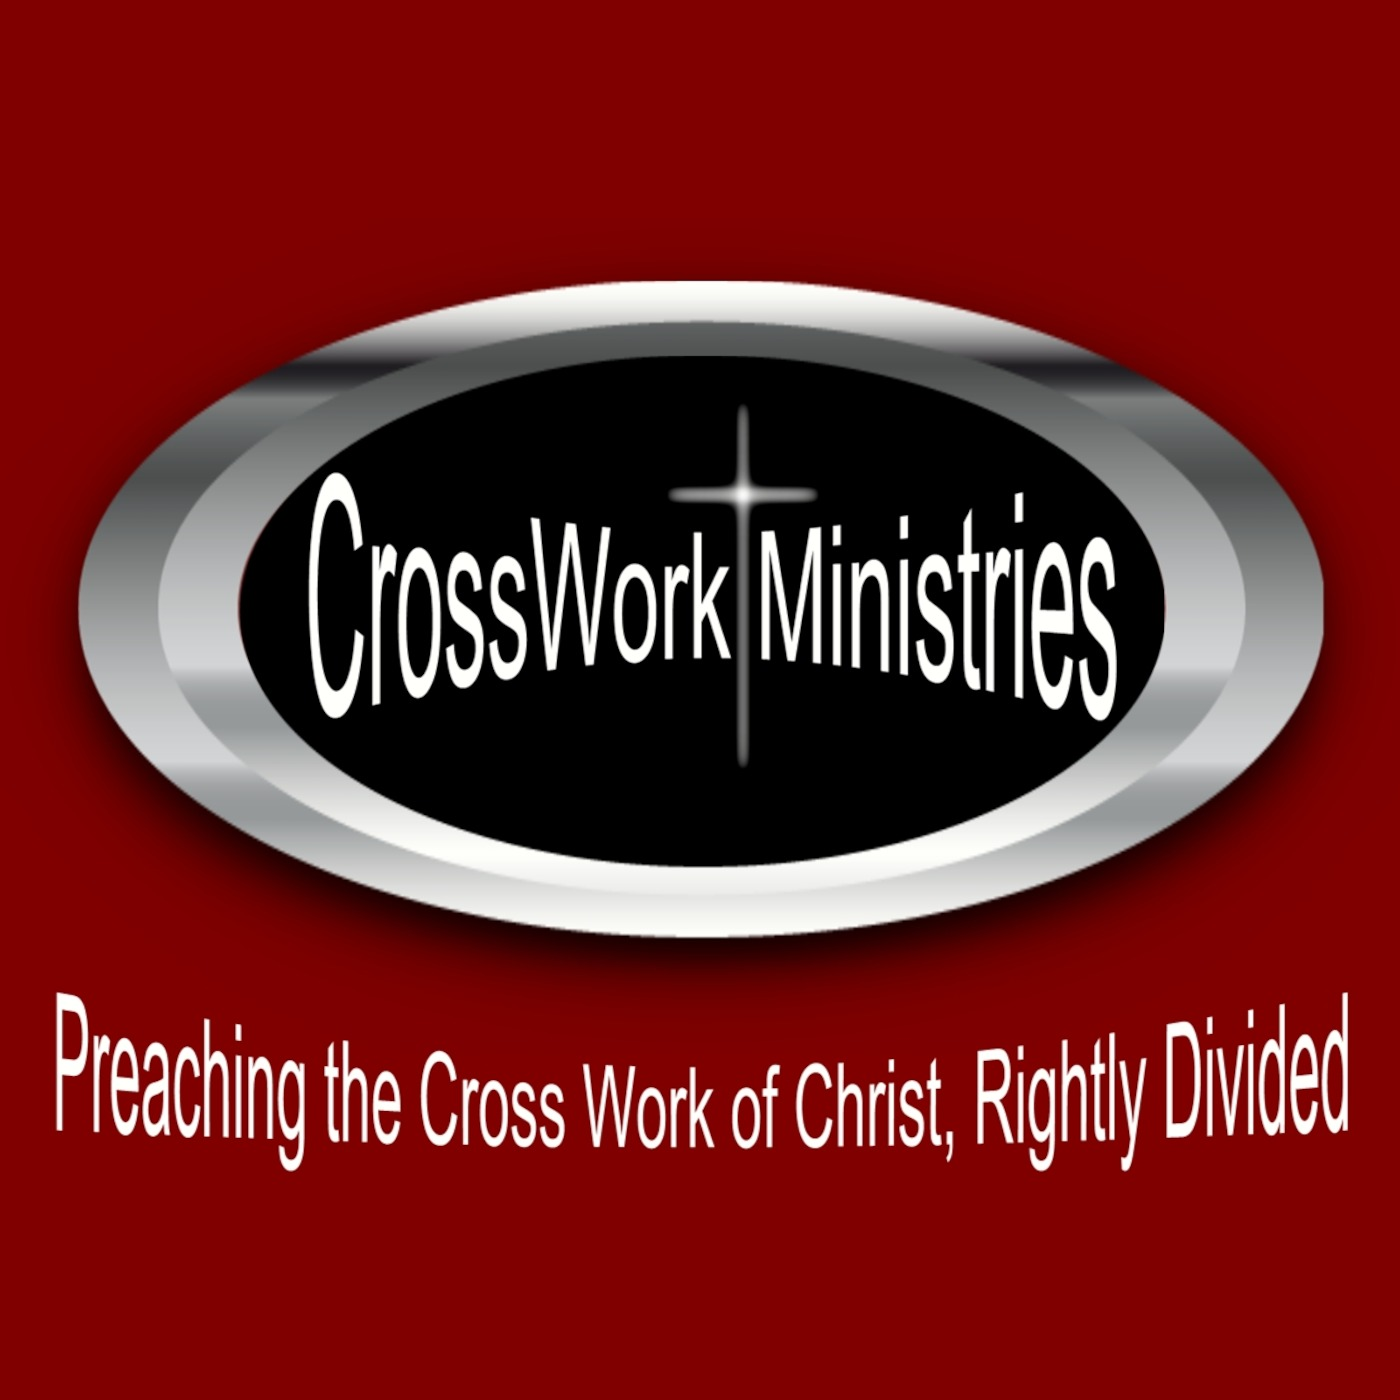 CrossWork Ministries